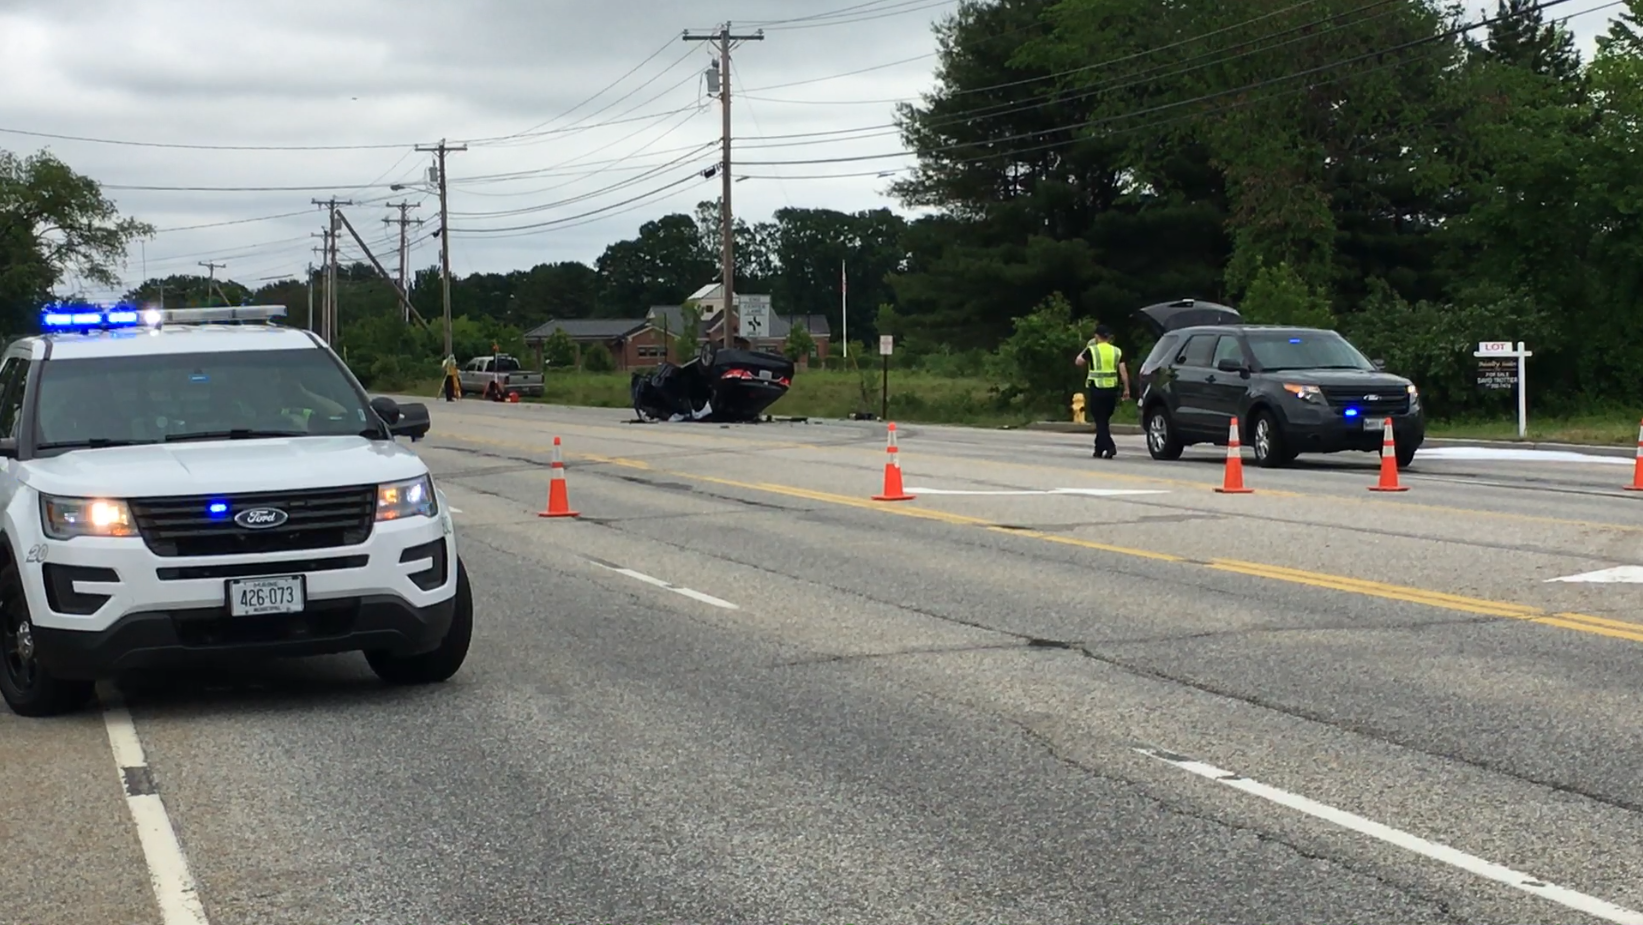 Route 1 was closed from Old Blue Point Rd in Scarborough to Cascade Road in Saco due to a major accident in Saco. (BRAD ROGERS/WGME)